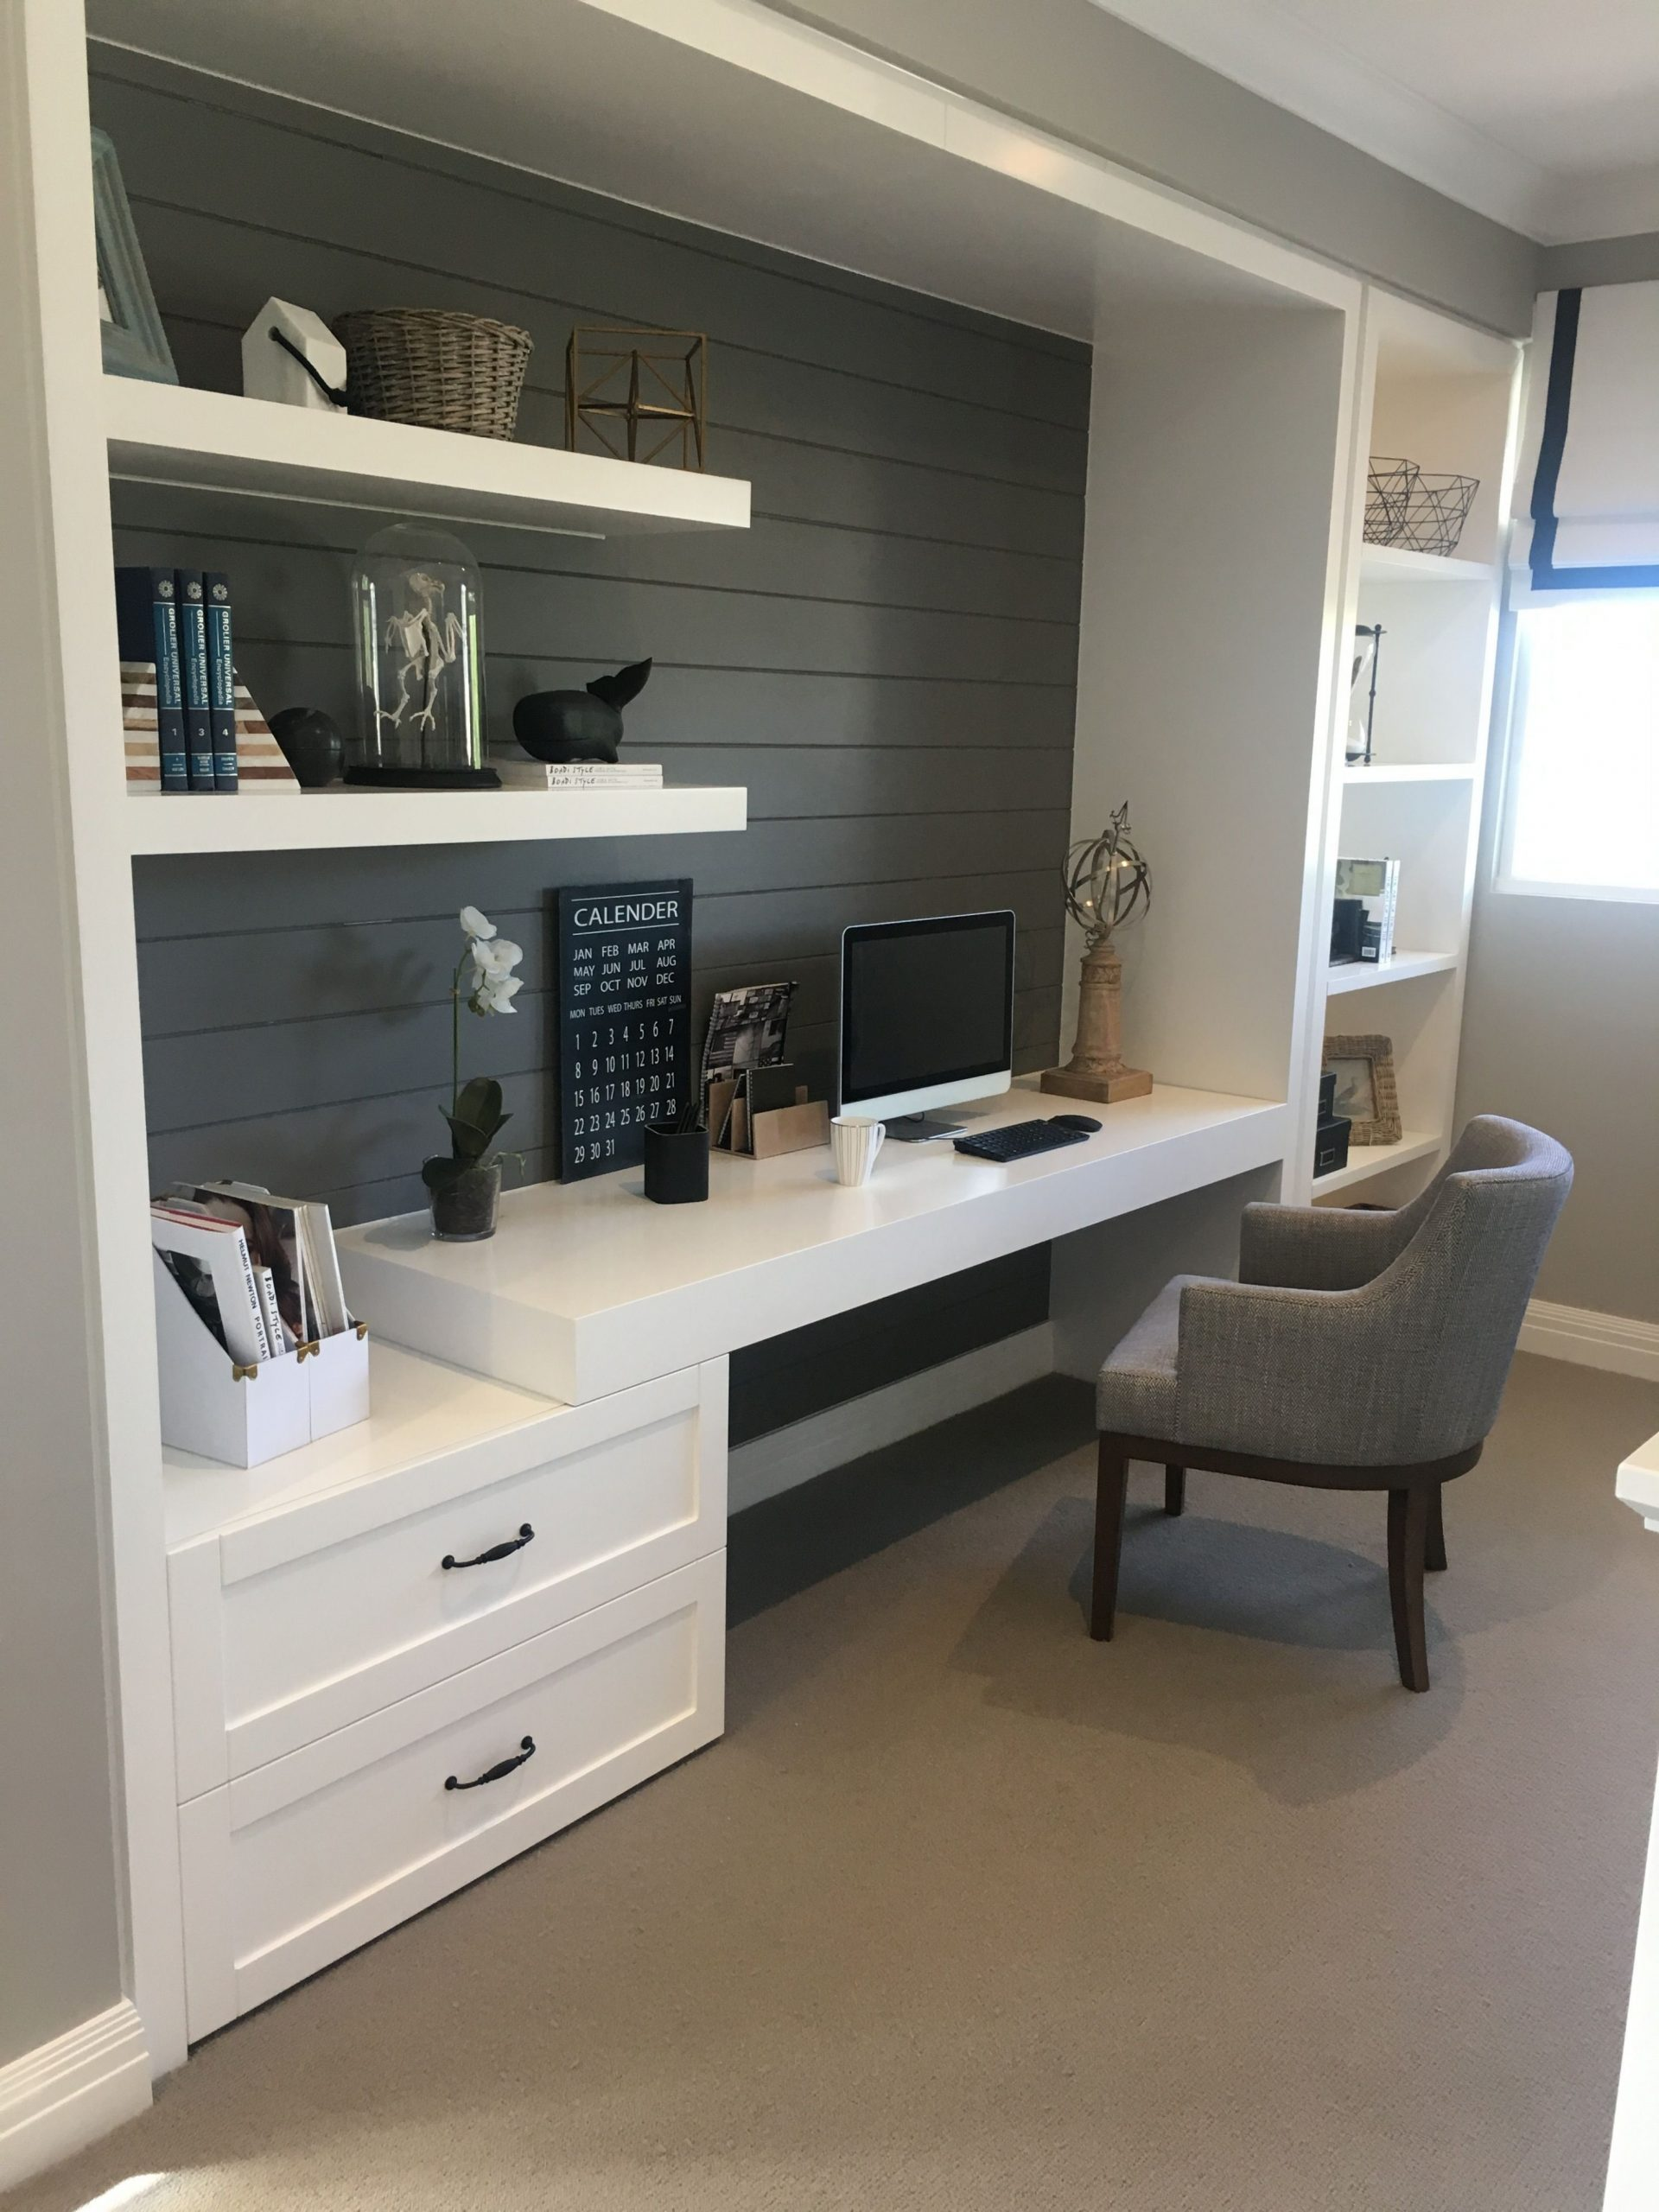 Working From Home – Five Home Office Ideas for Running a Business  - Home Office Location Ideas